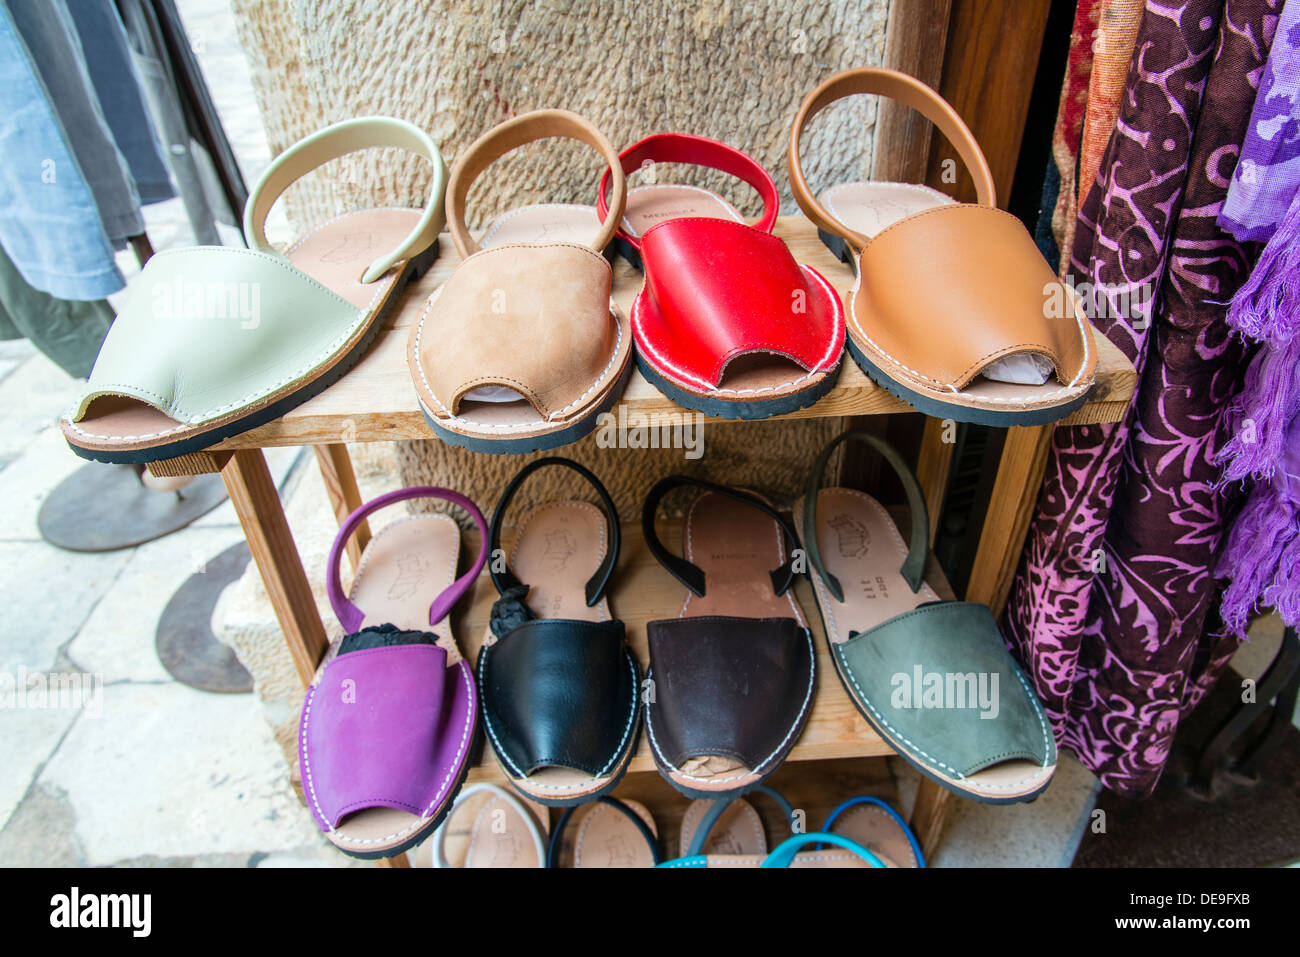 Typical menorquinas sandals, Ciutadella, Minorca or Menorca, Balearic Islands, Spain - Stock Image